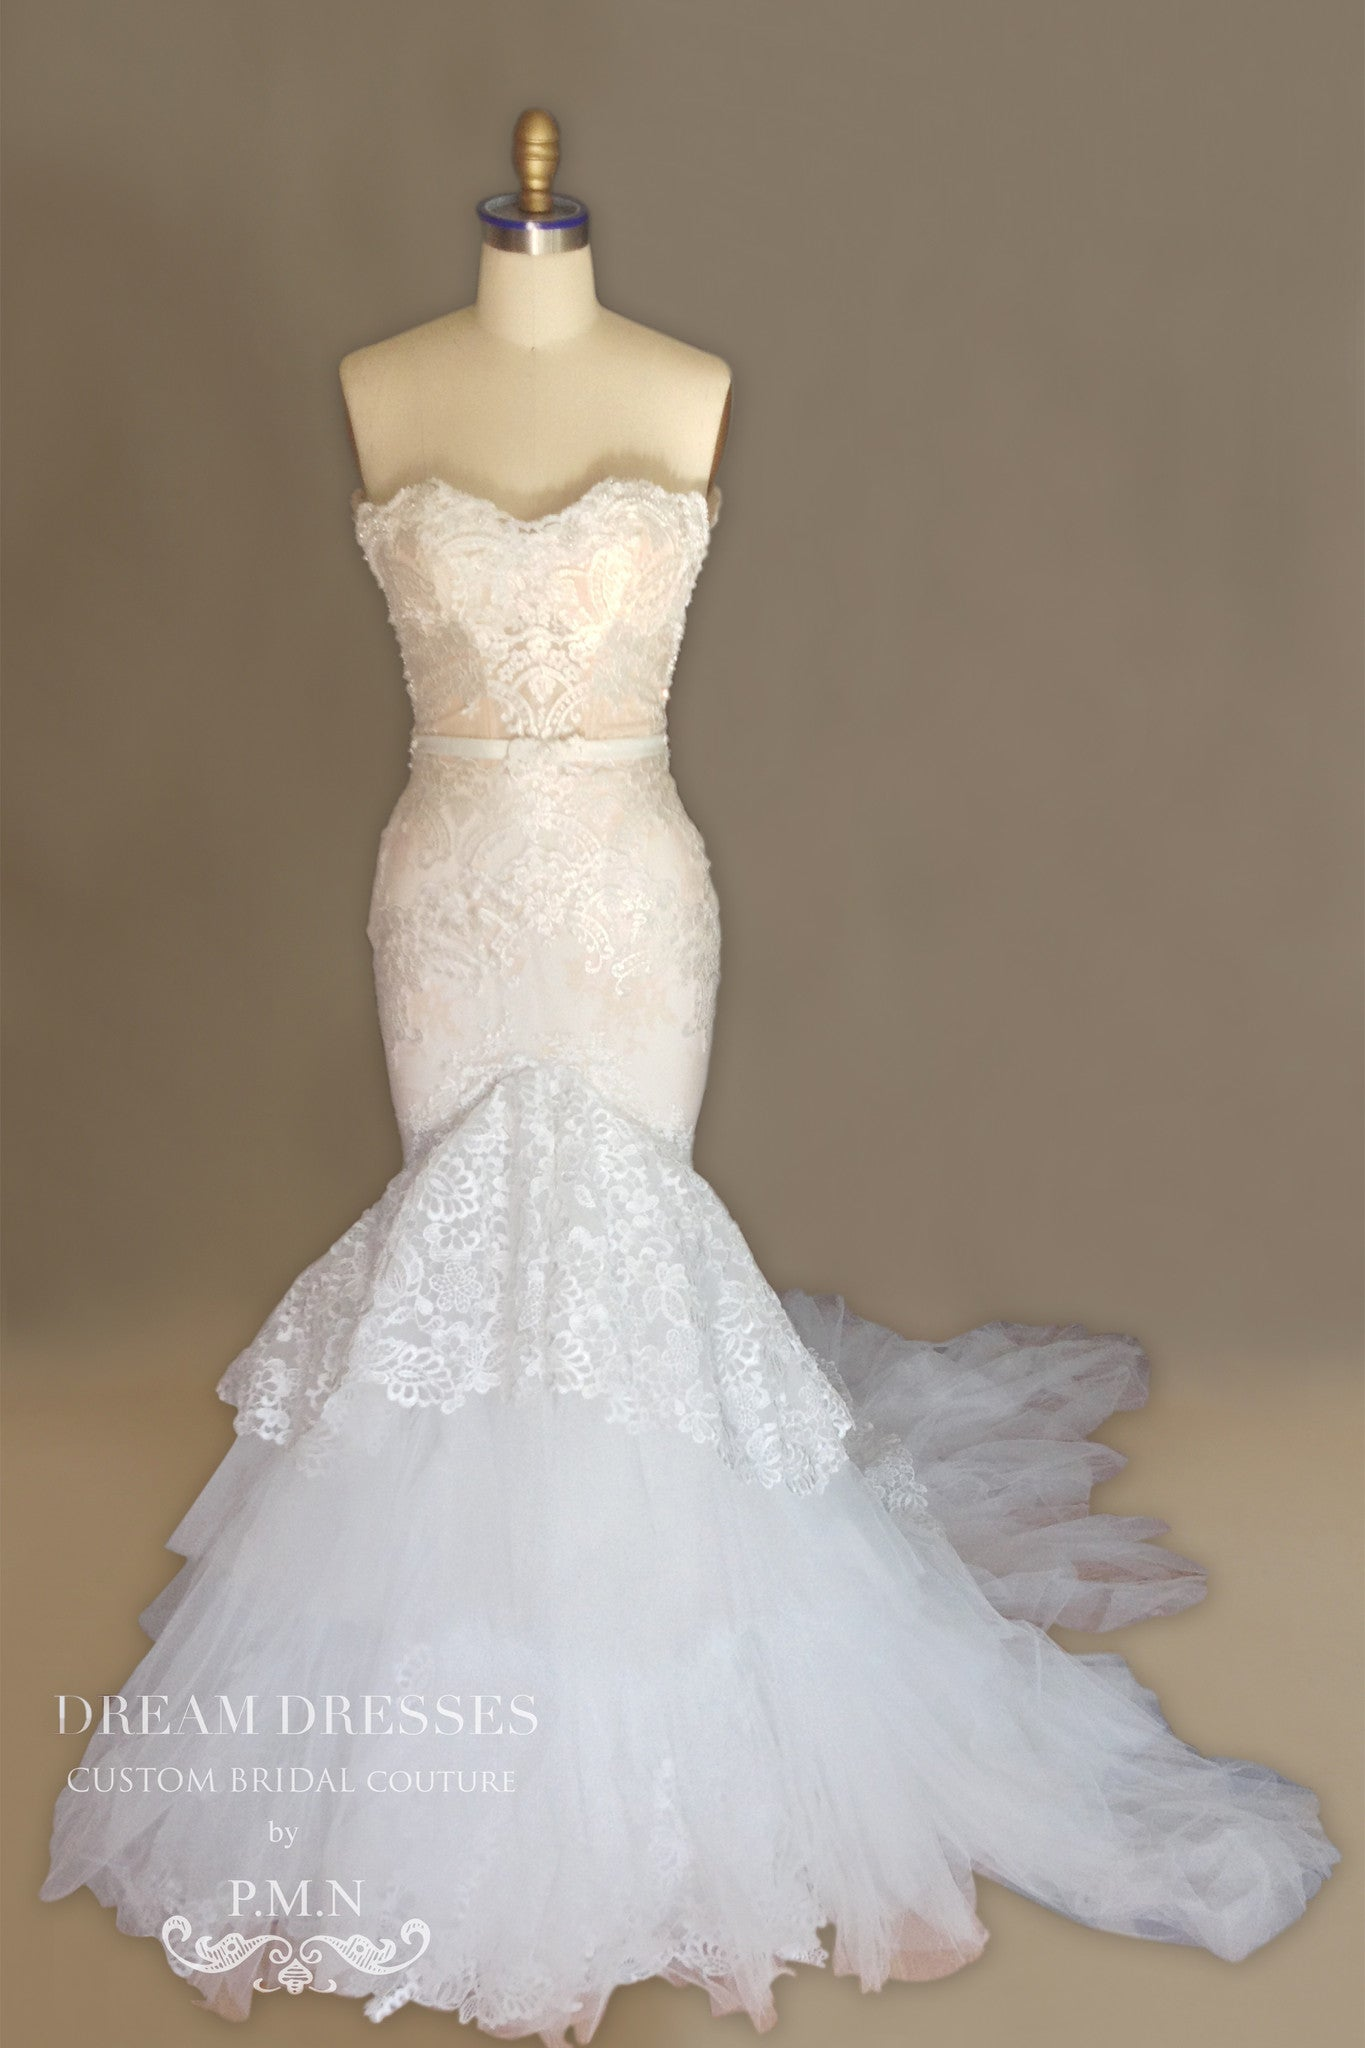 Lace Trumpet Wedding Dress With Four Layer Extended Long Train (Style # Chisa PB081) - Dream Dresses by P.M.N  - 12